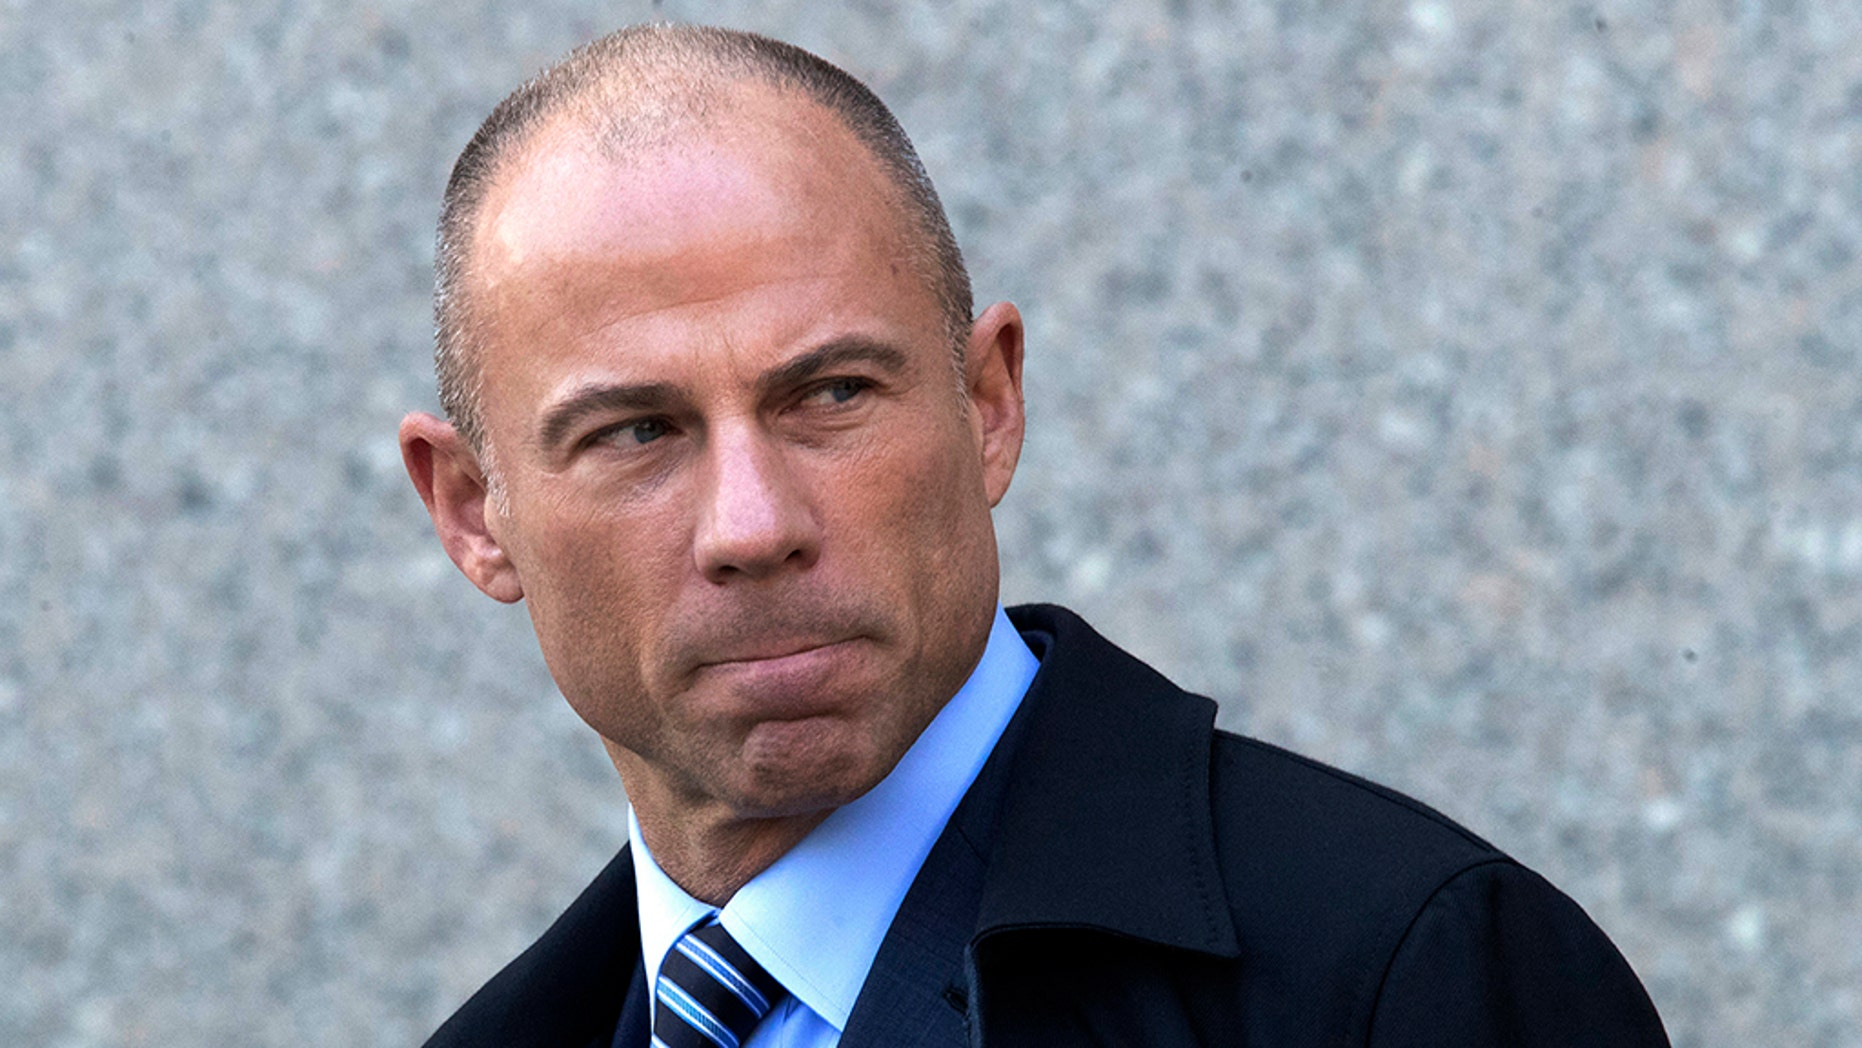 """Michael Avenatti emerged as a household name after frequent appearances on CNN, MSNBC and """"The View."""" (AP Photo/Mary Altaffer, File)"""